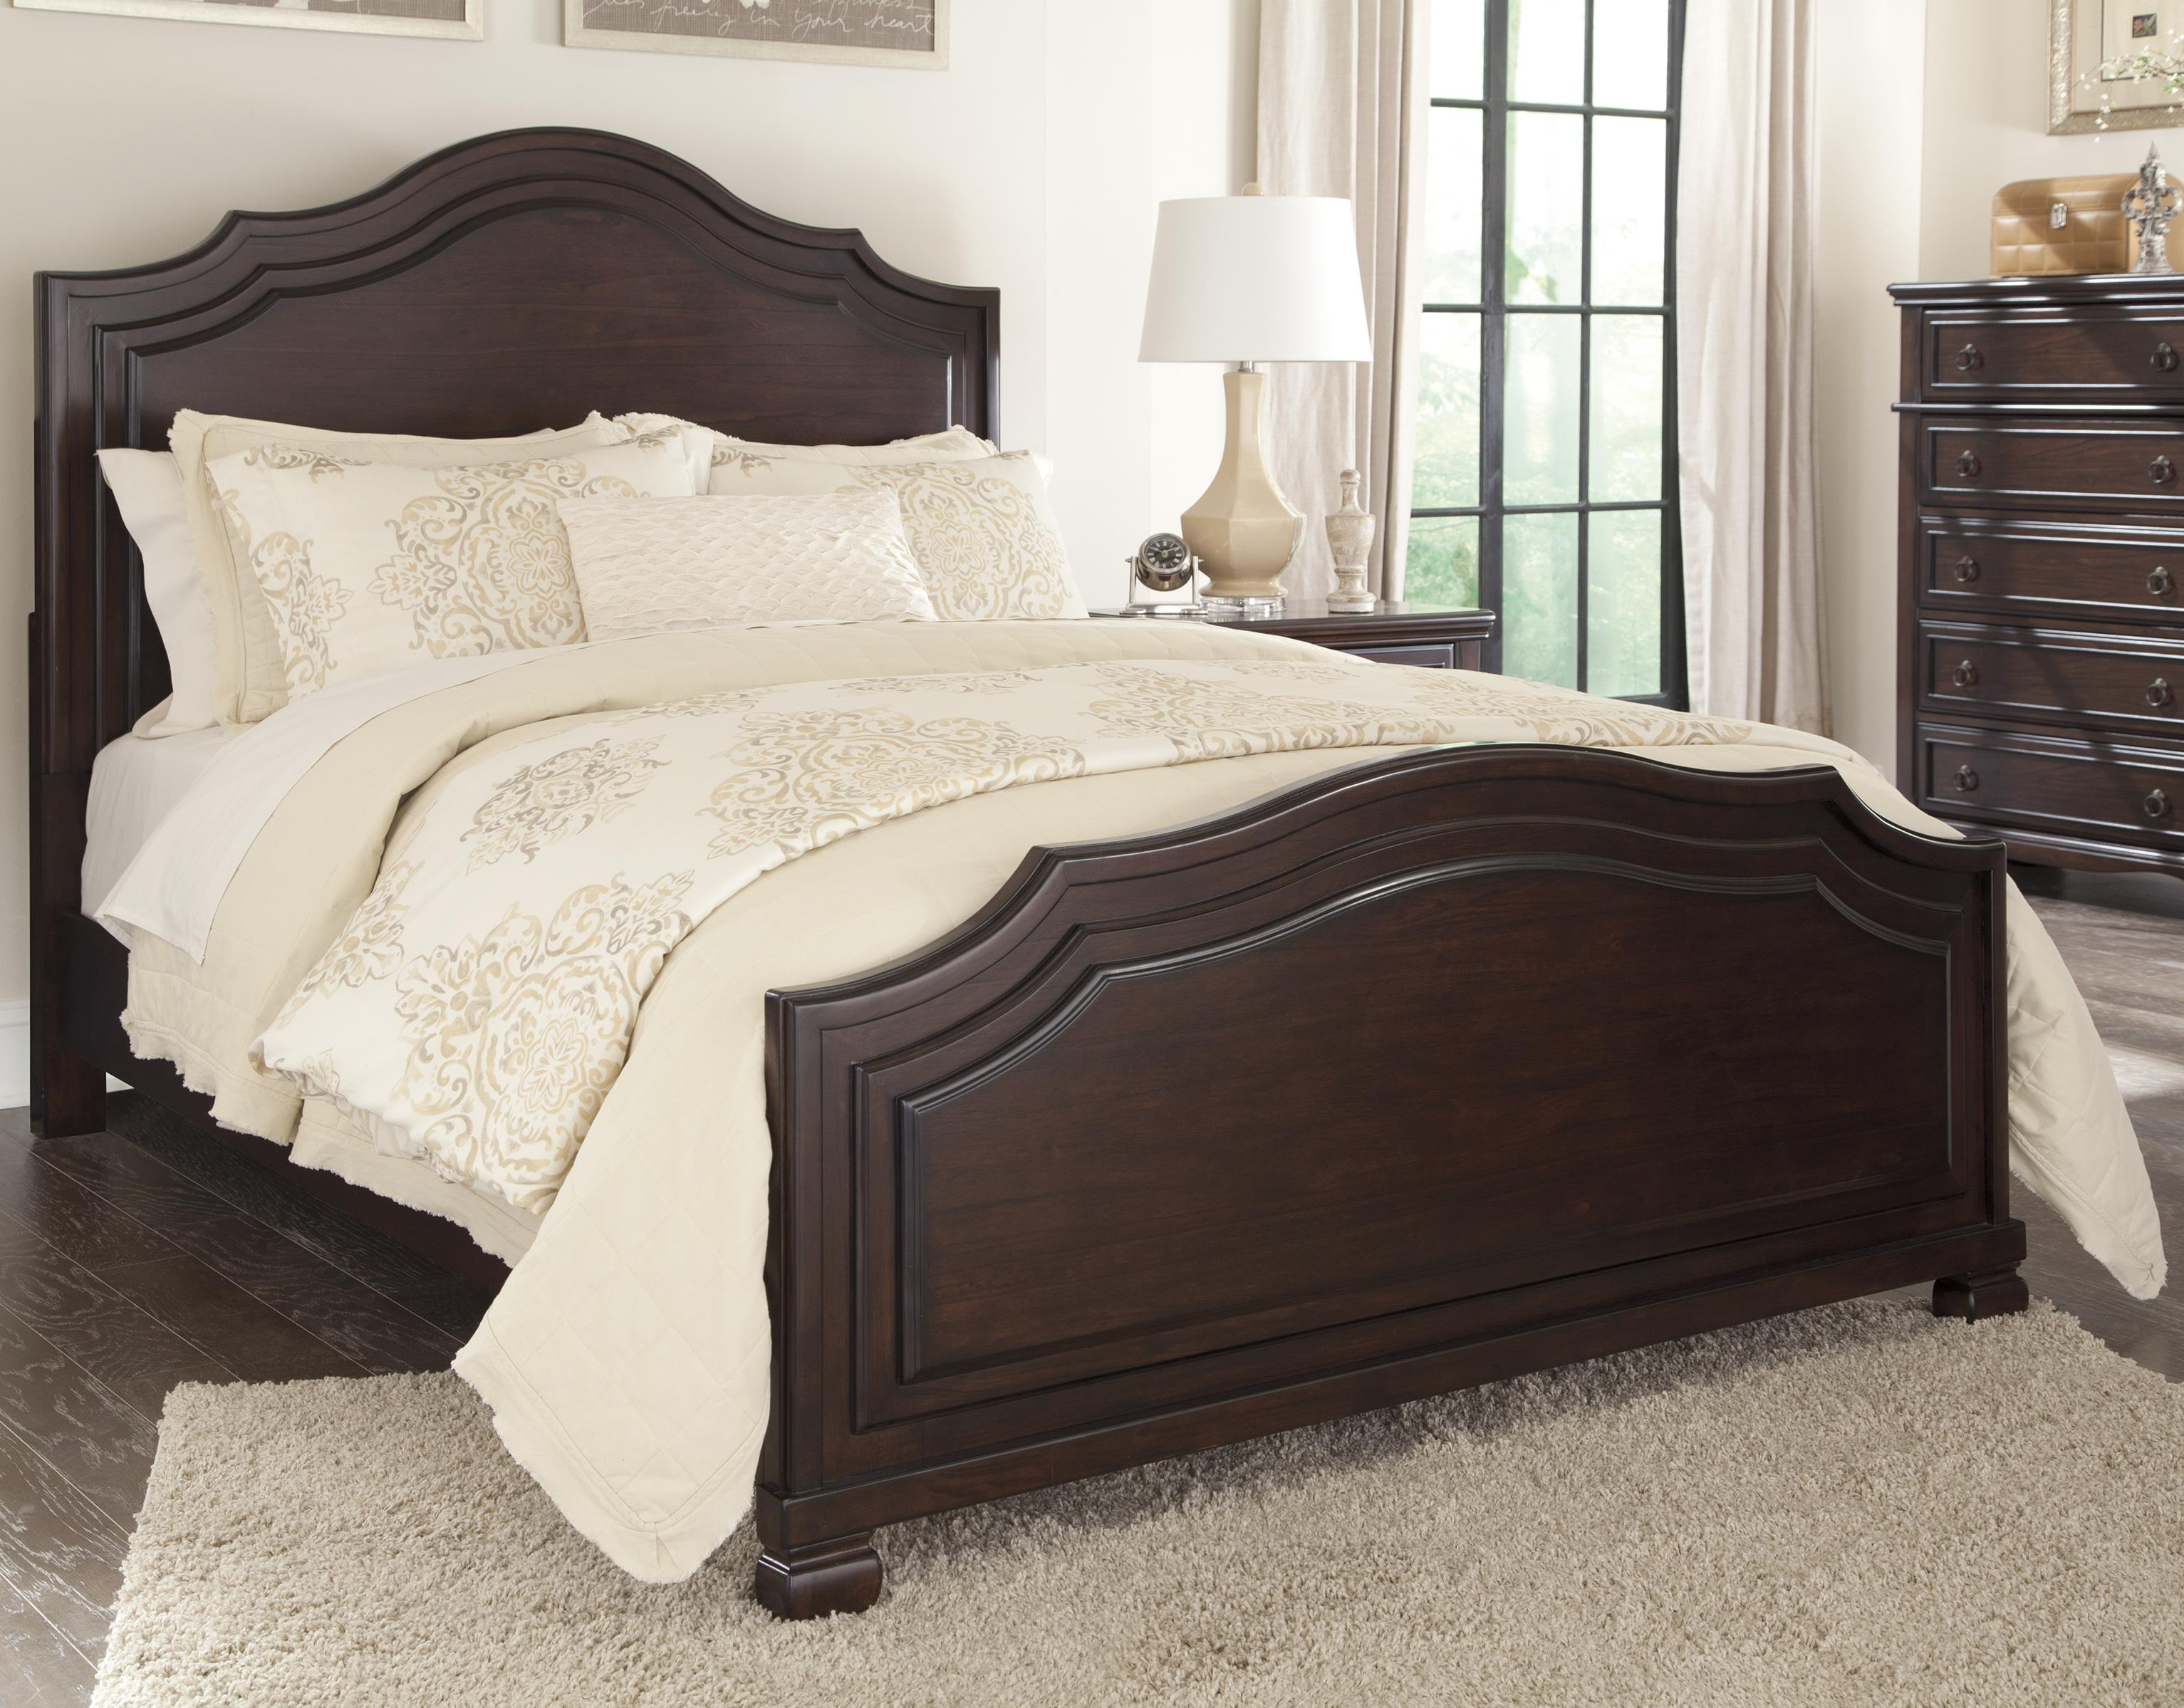 Signature Design by Ashley Brulind California King Panel Bed - Item Number: B554-58+56+94